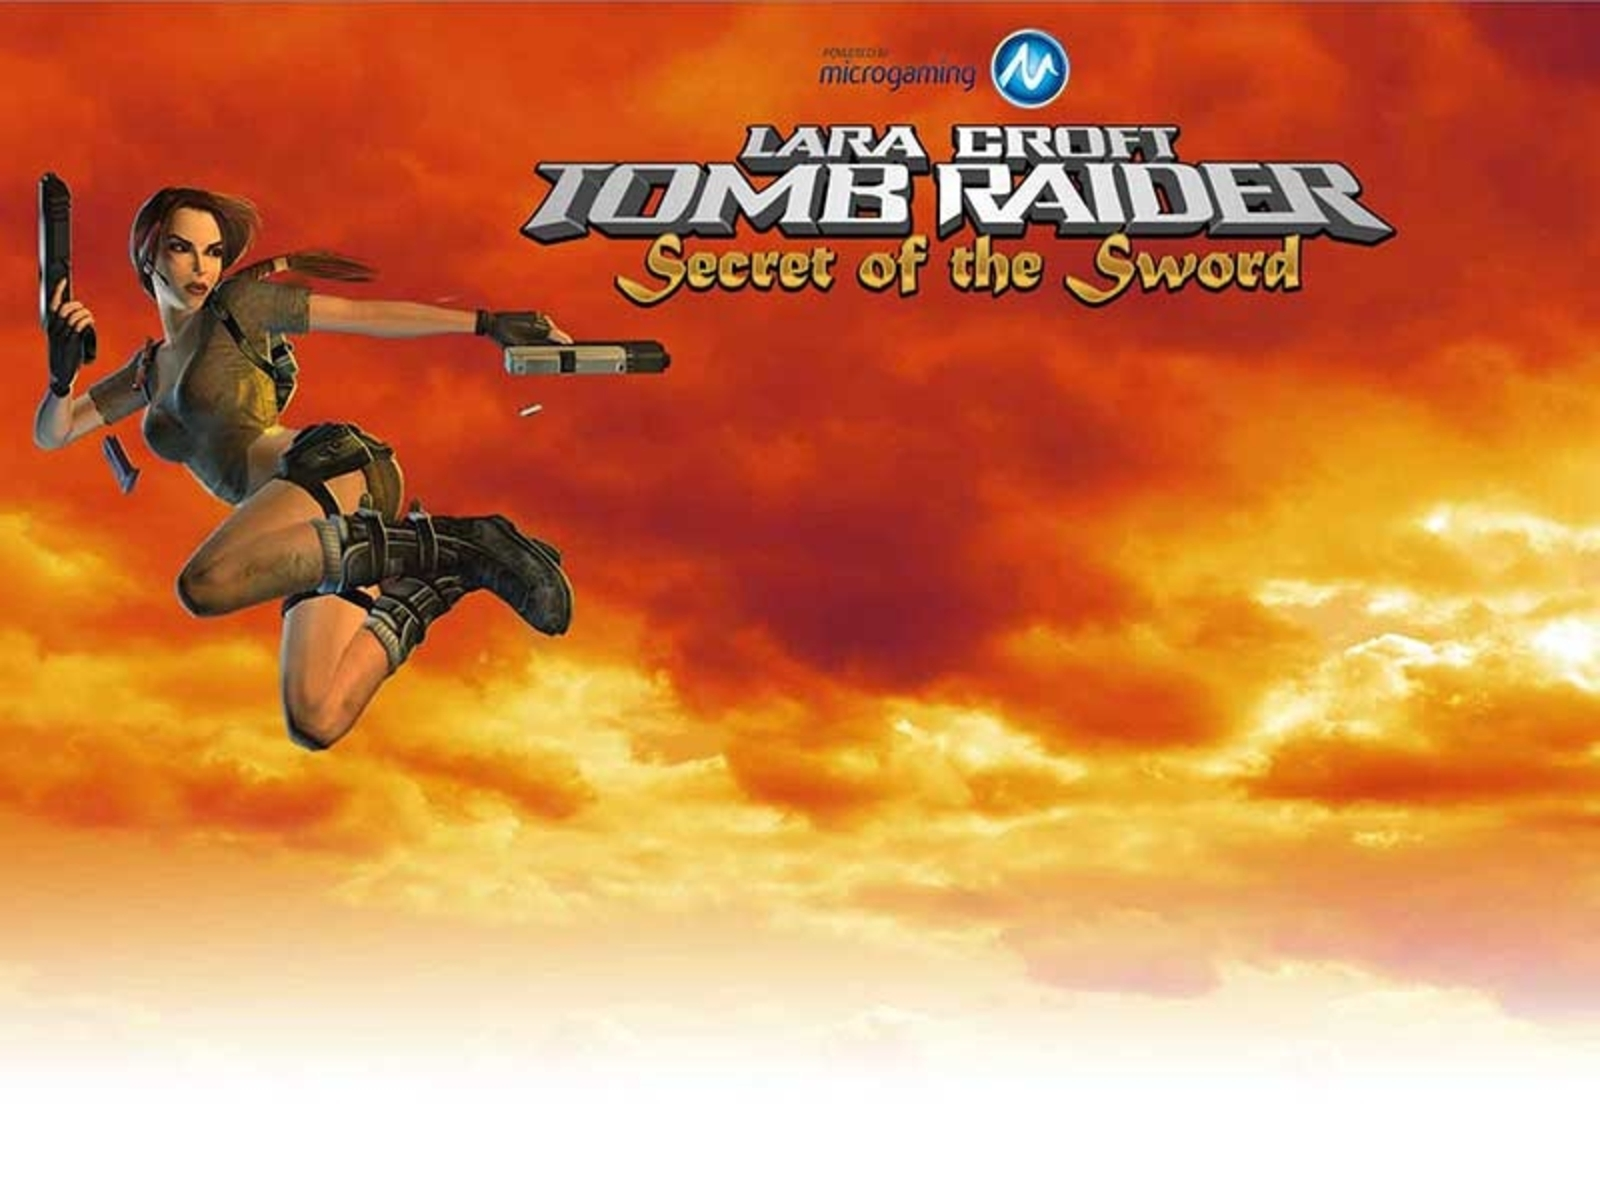 The Tomb Raider Secret of the Sword Online Slot Demo Game by Microgaming